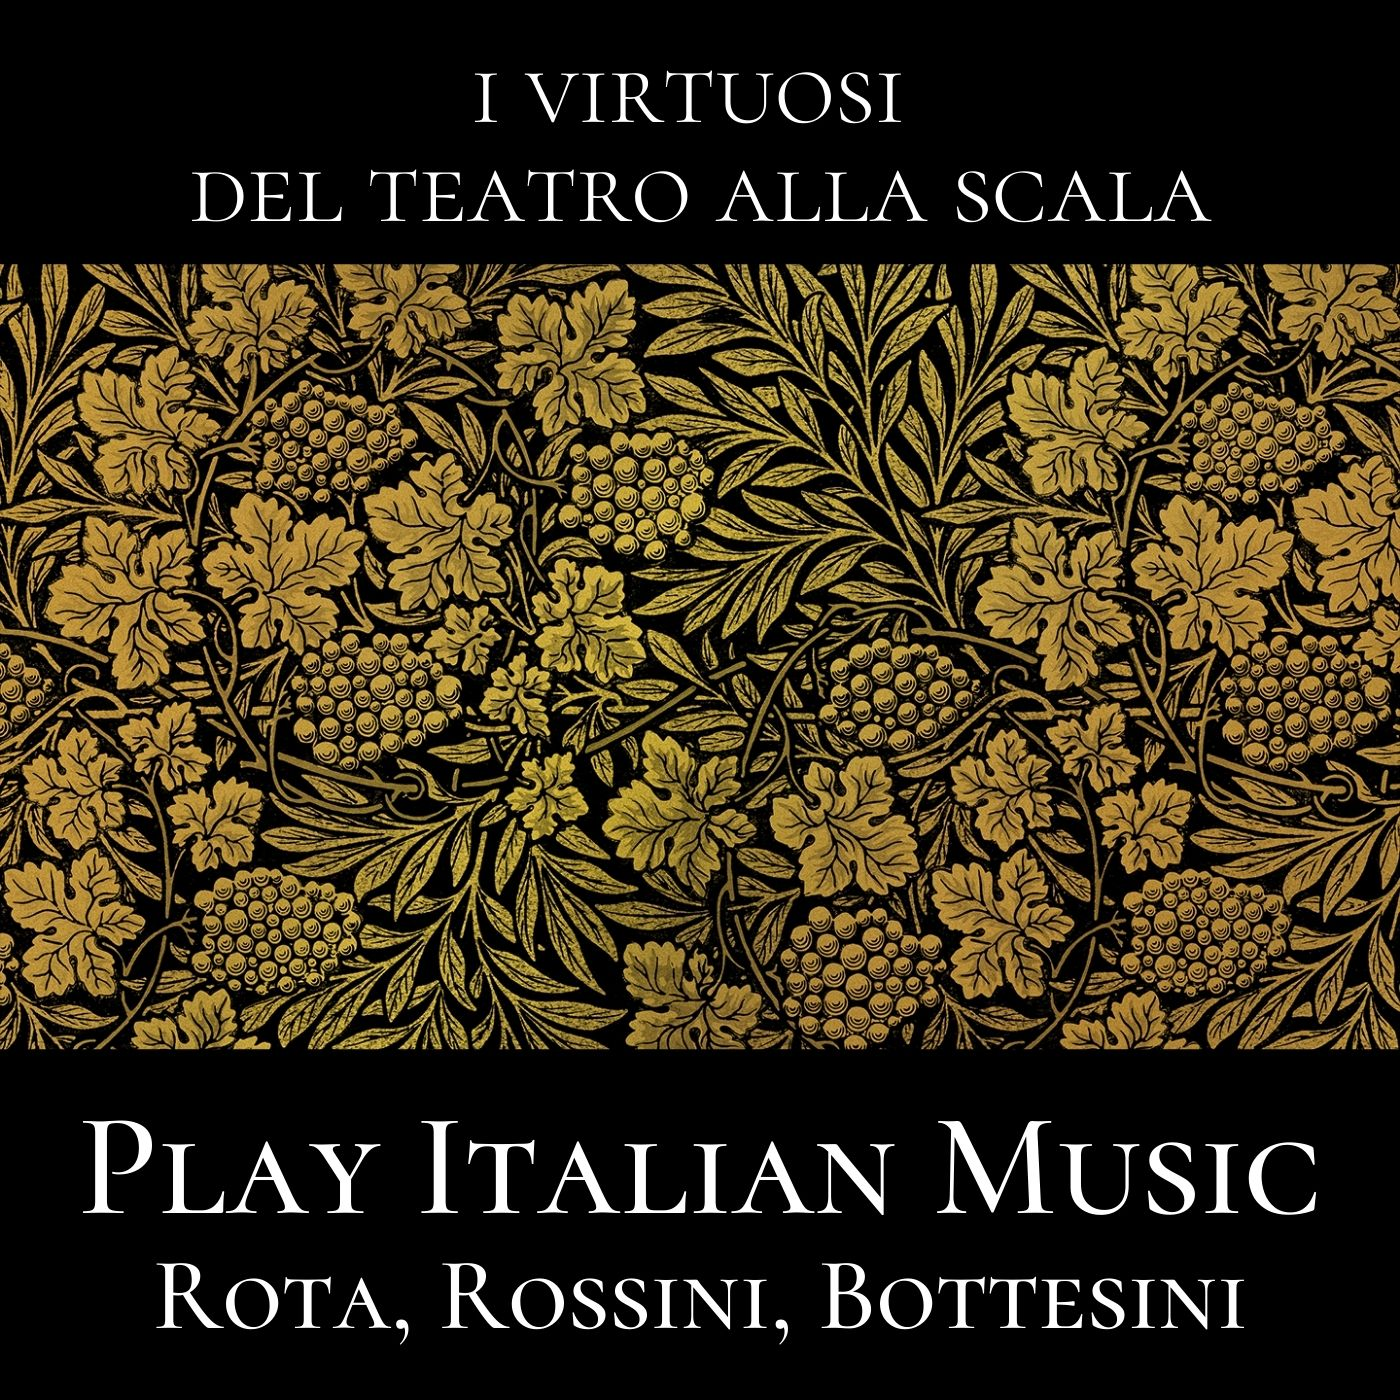 I Virtuosi del Teatro alla Scala Play Italian Music